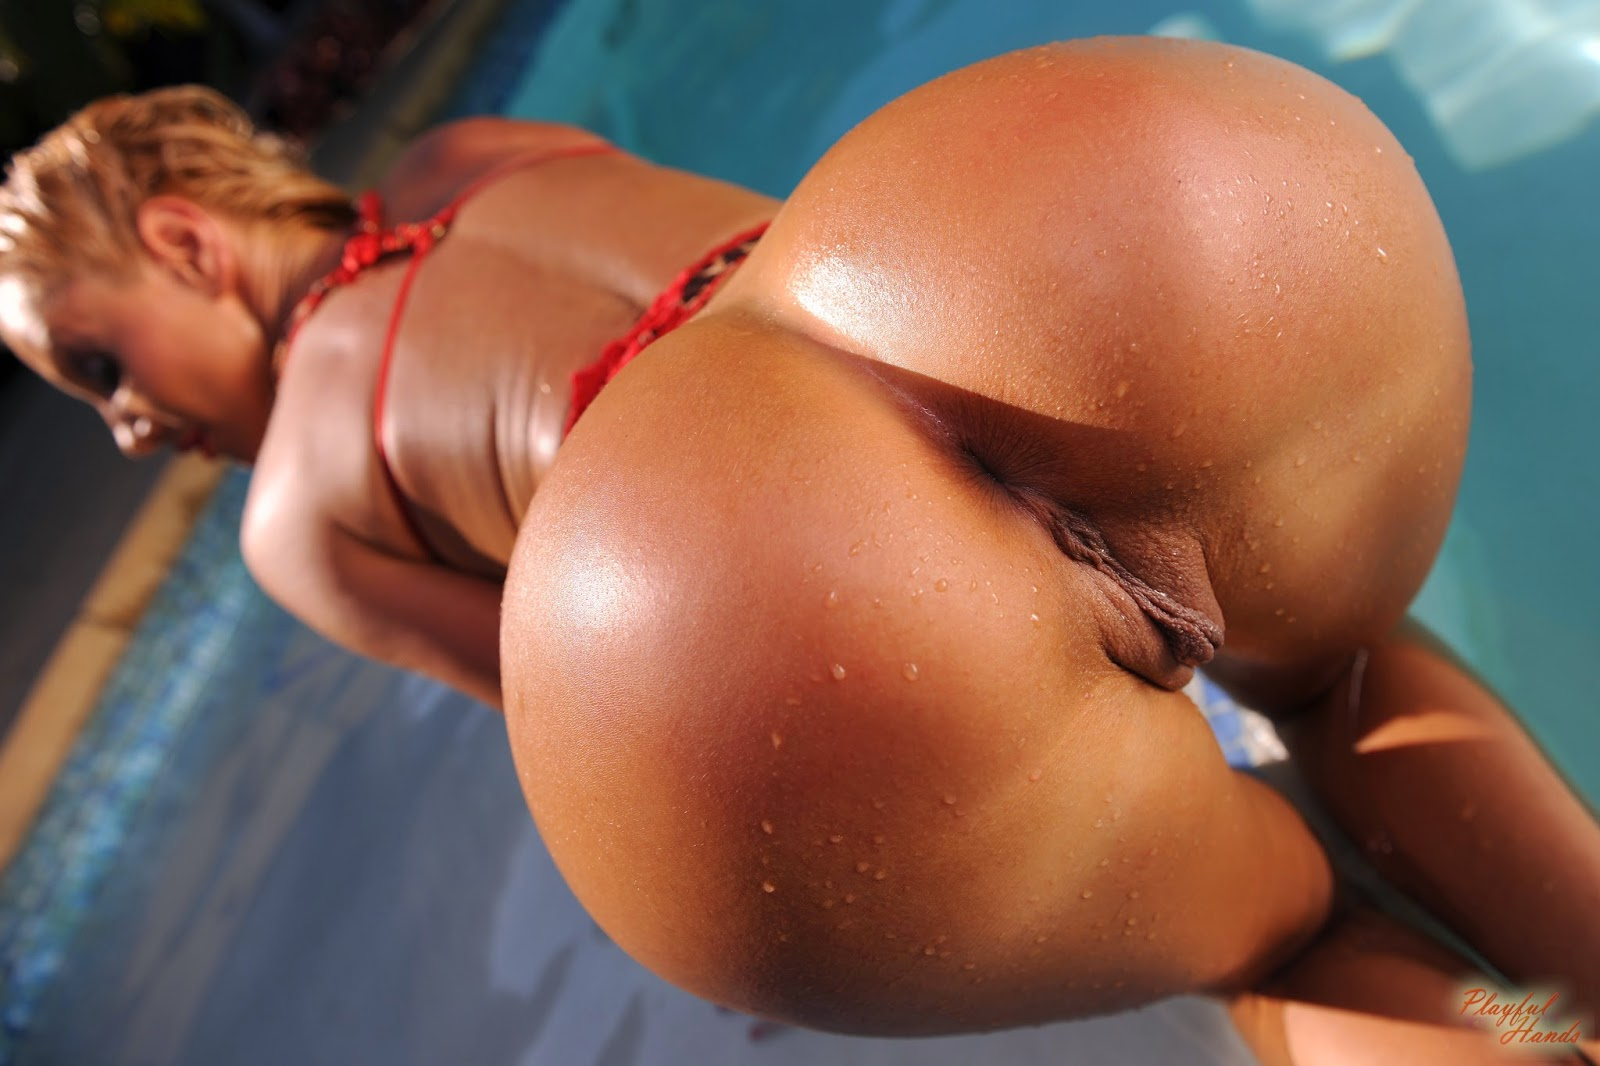 Perfect and round perfect pussy ass